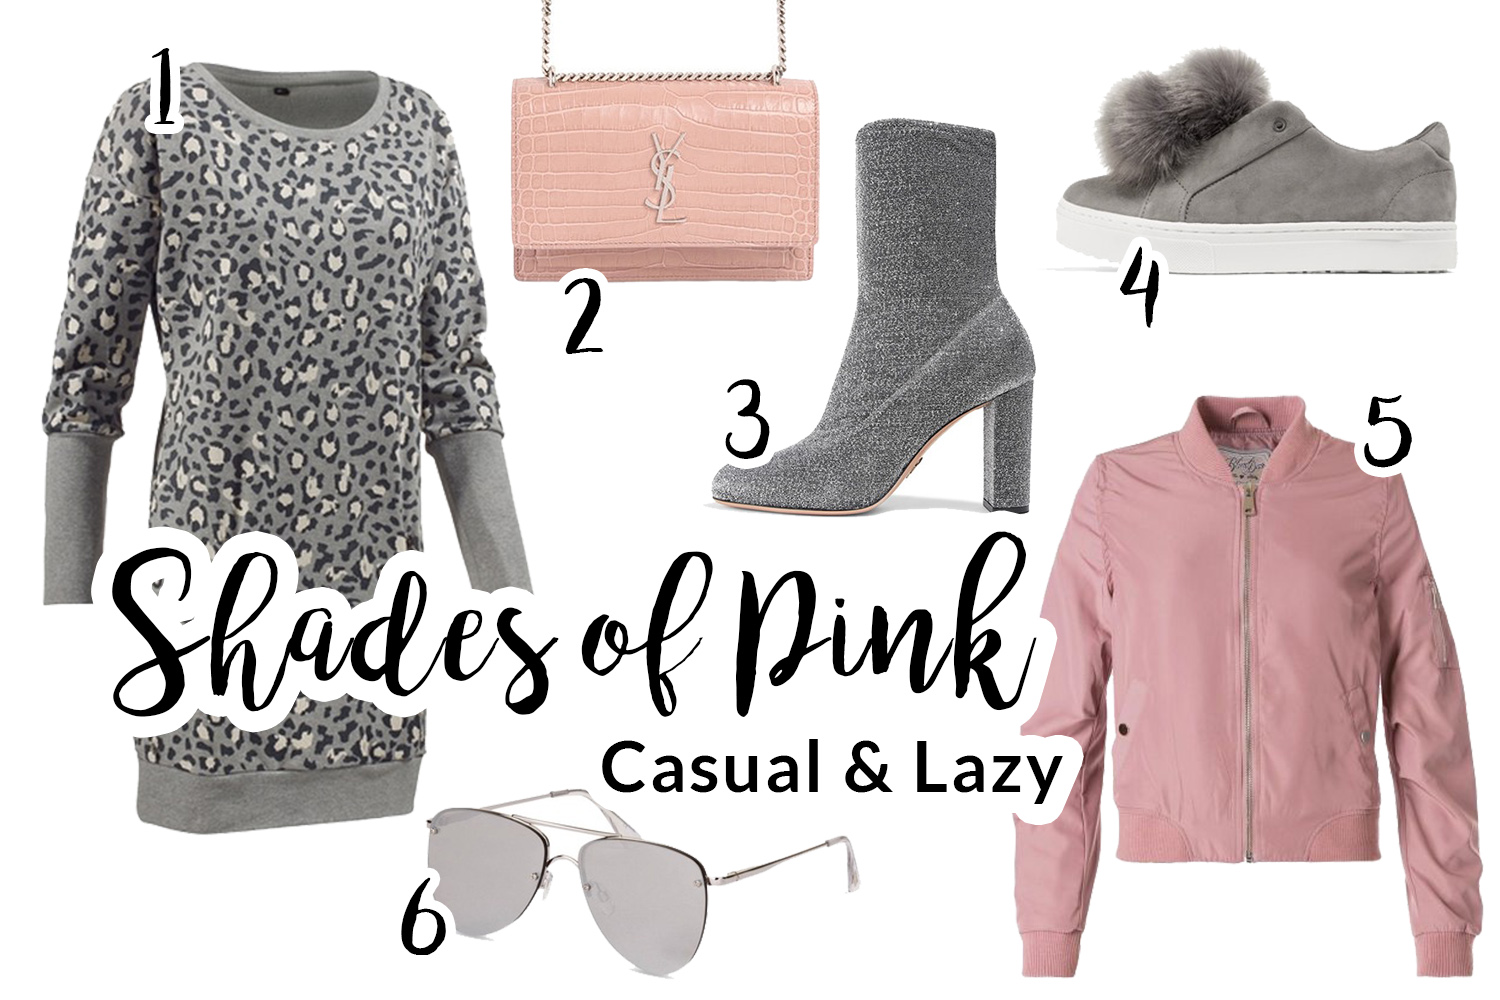 Date Night, Valentinstagsoutfit, Modetipps, Fashion Tipps, Mix and Match, Influencer, Modeblog, Berlin, Advanceyourstyle